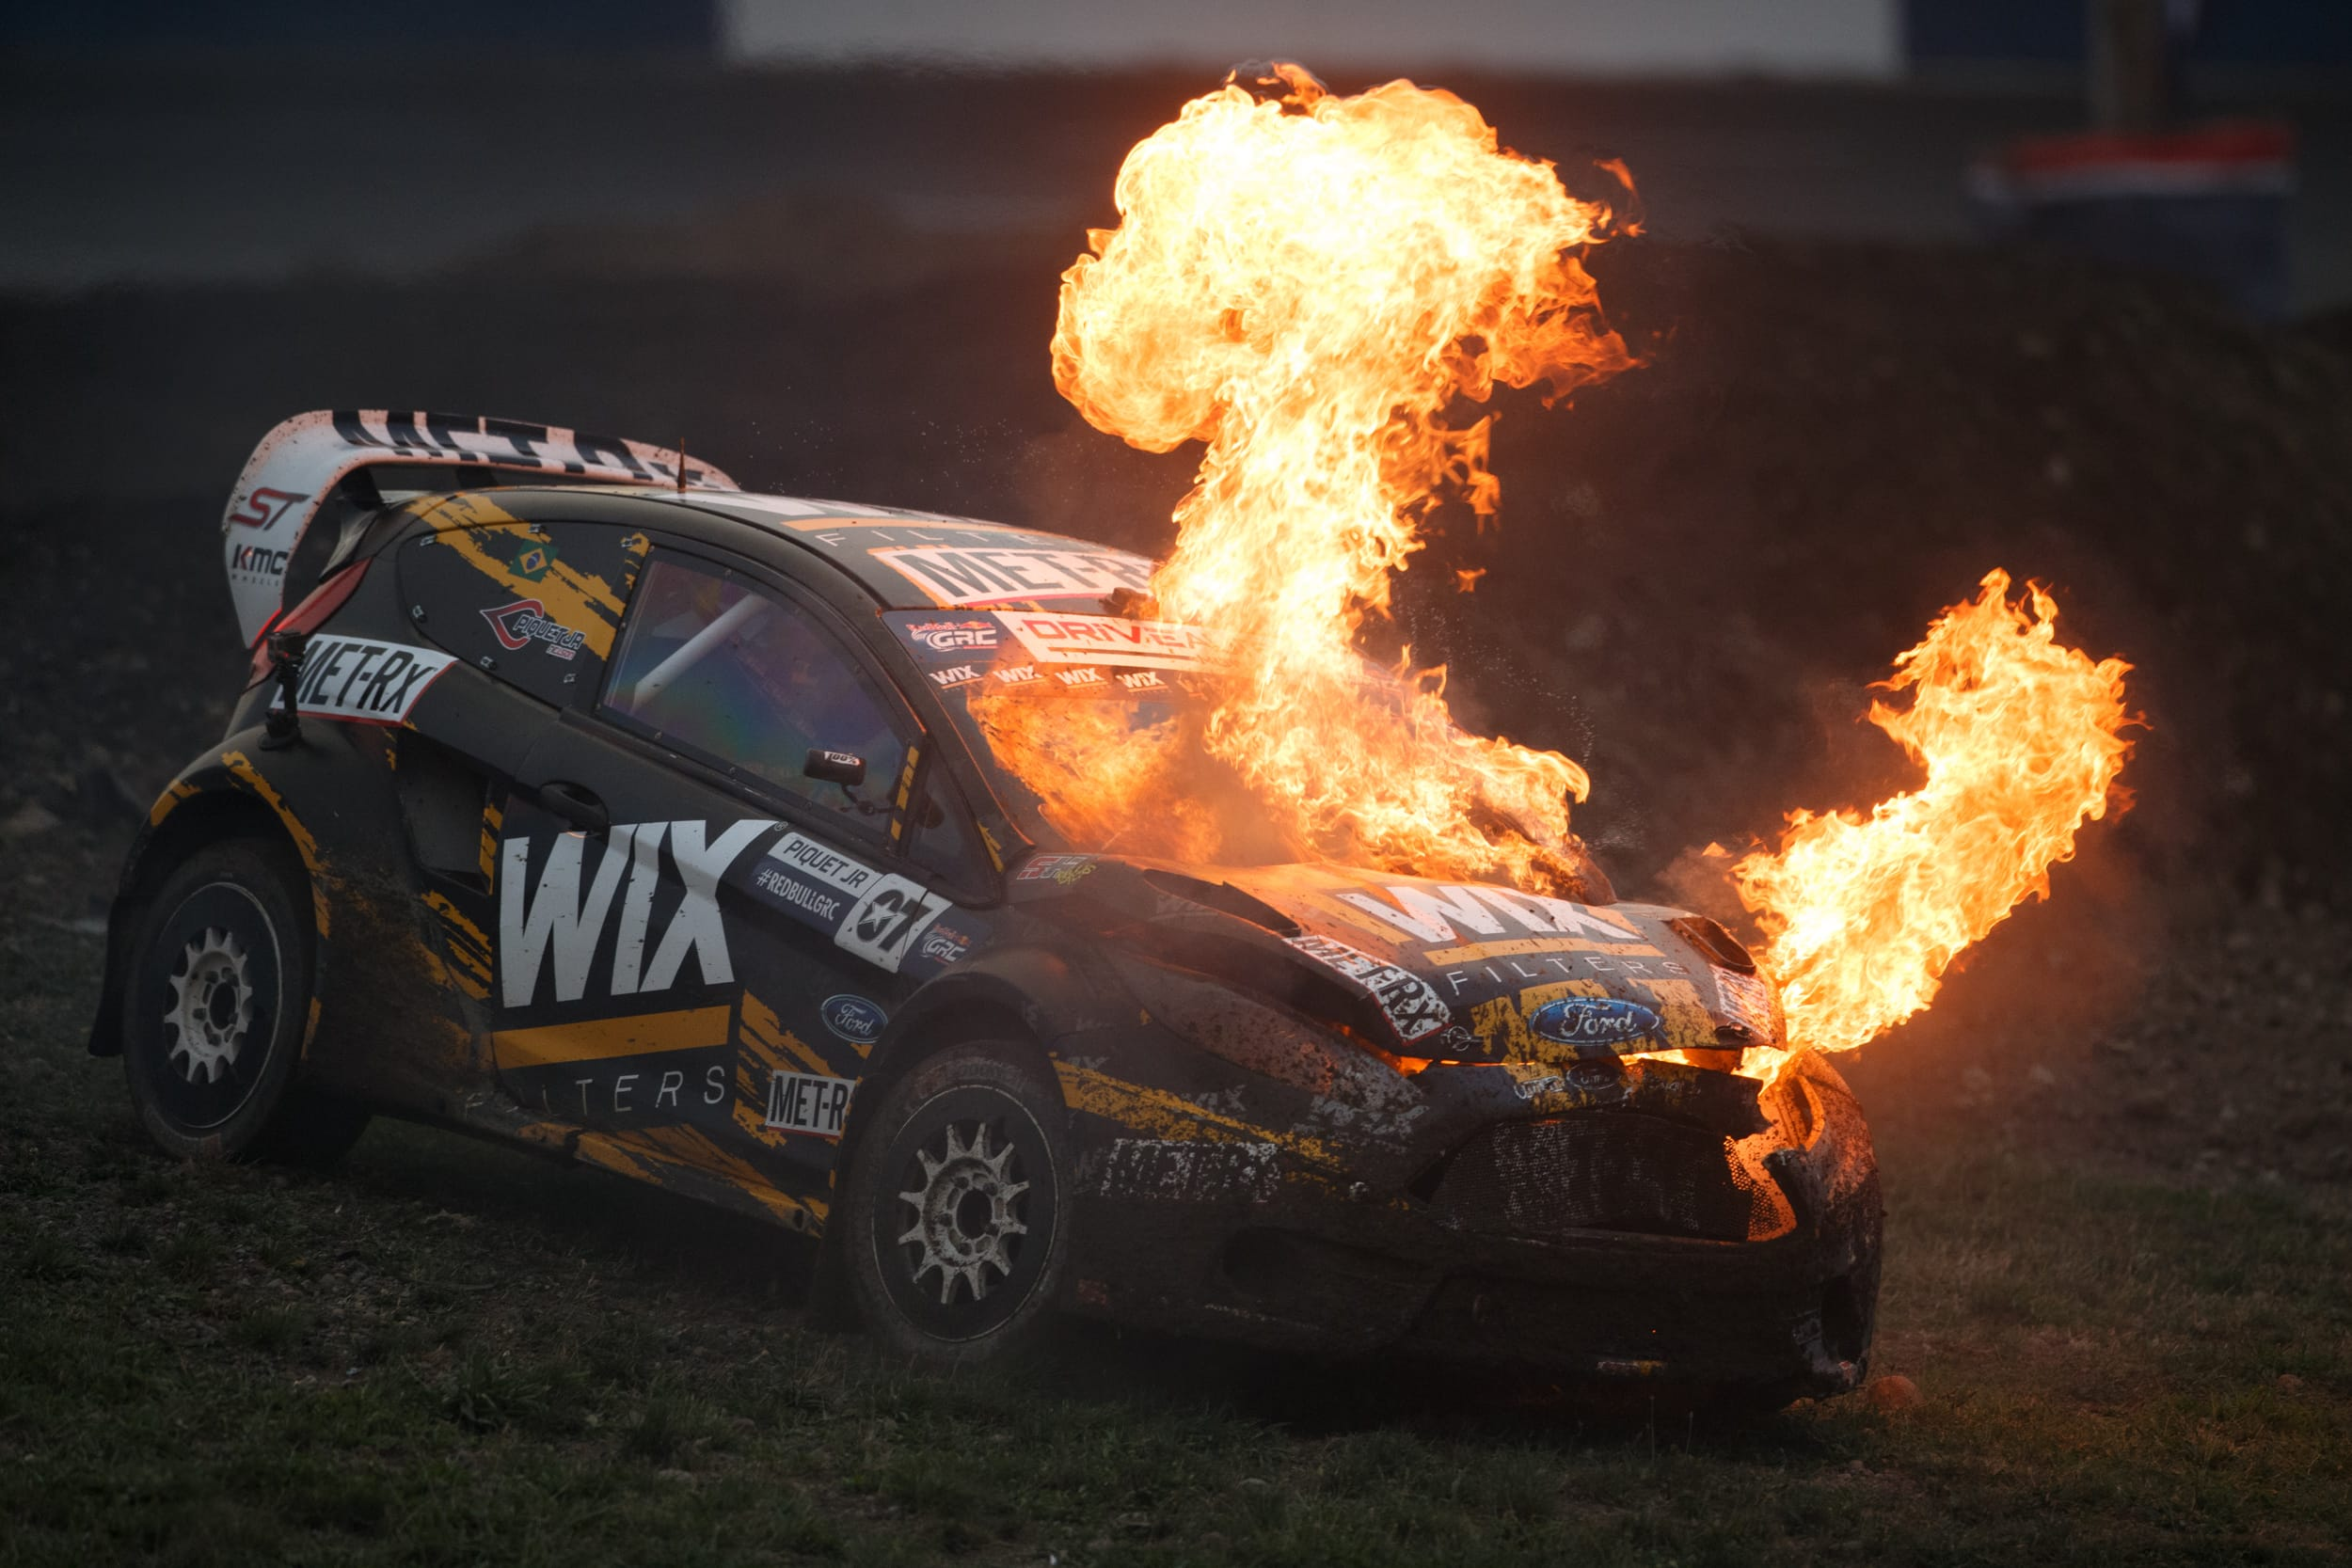 Red Bull GRC Racing